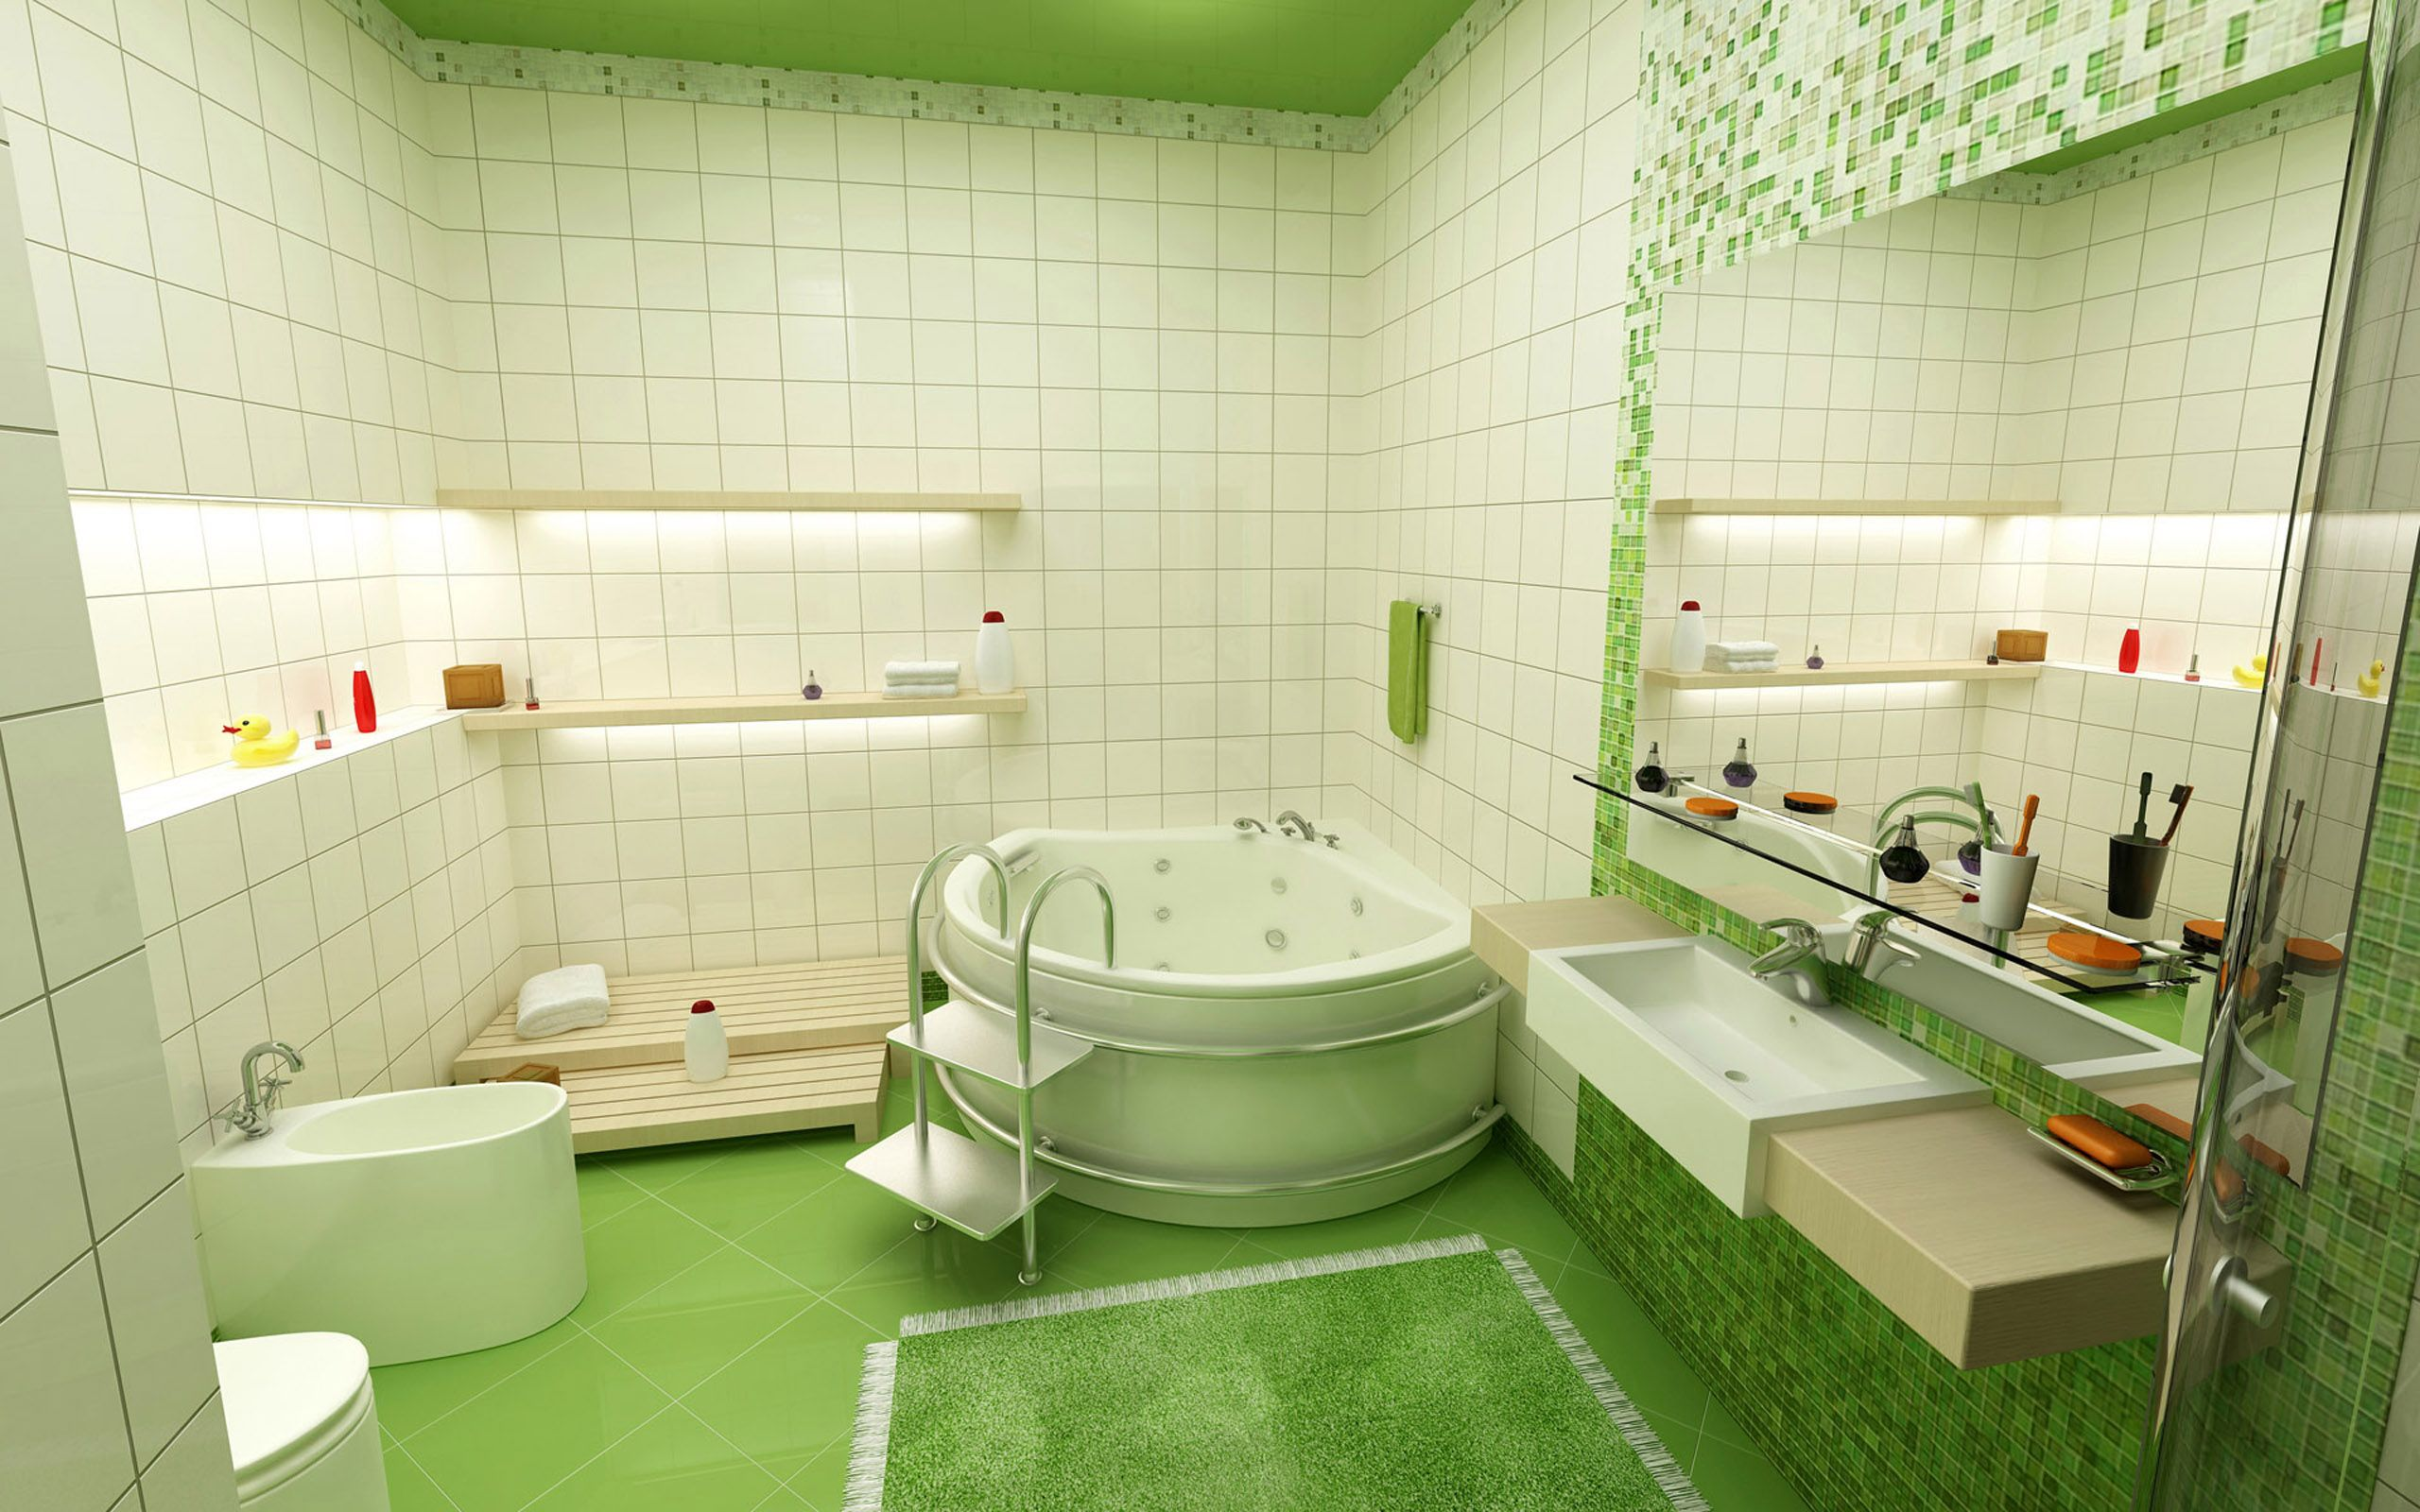 Bathroom Set Ideas With Ultra Modern Bathtub And Toilet Also Beautiful Green Rug Design For Kid Sets